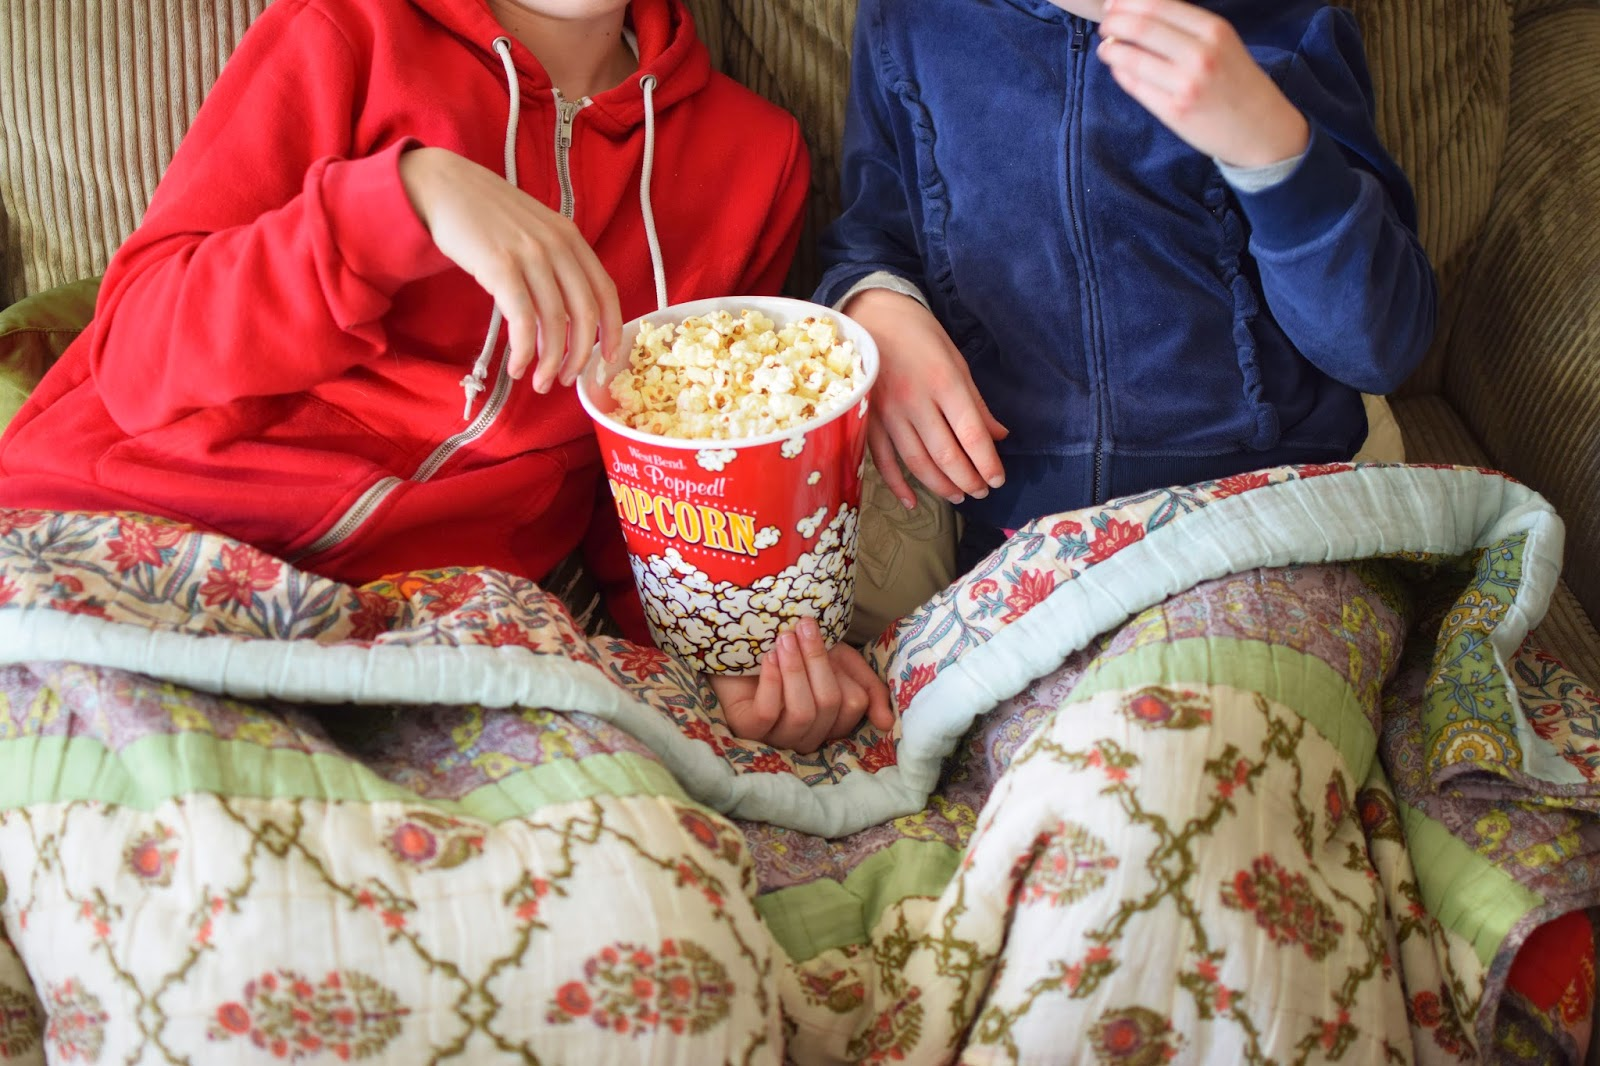 Woman In Real Lifethe Art Of The Everyday Popcorn Time Our Top 5 On Pinterest Short Circuit 2 Princess Bride And Movies We Are A Family Movie Lovers There Few Activities Like More Than Curling Up Sofa With Some To Watch Favourite Flicks